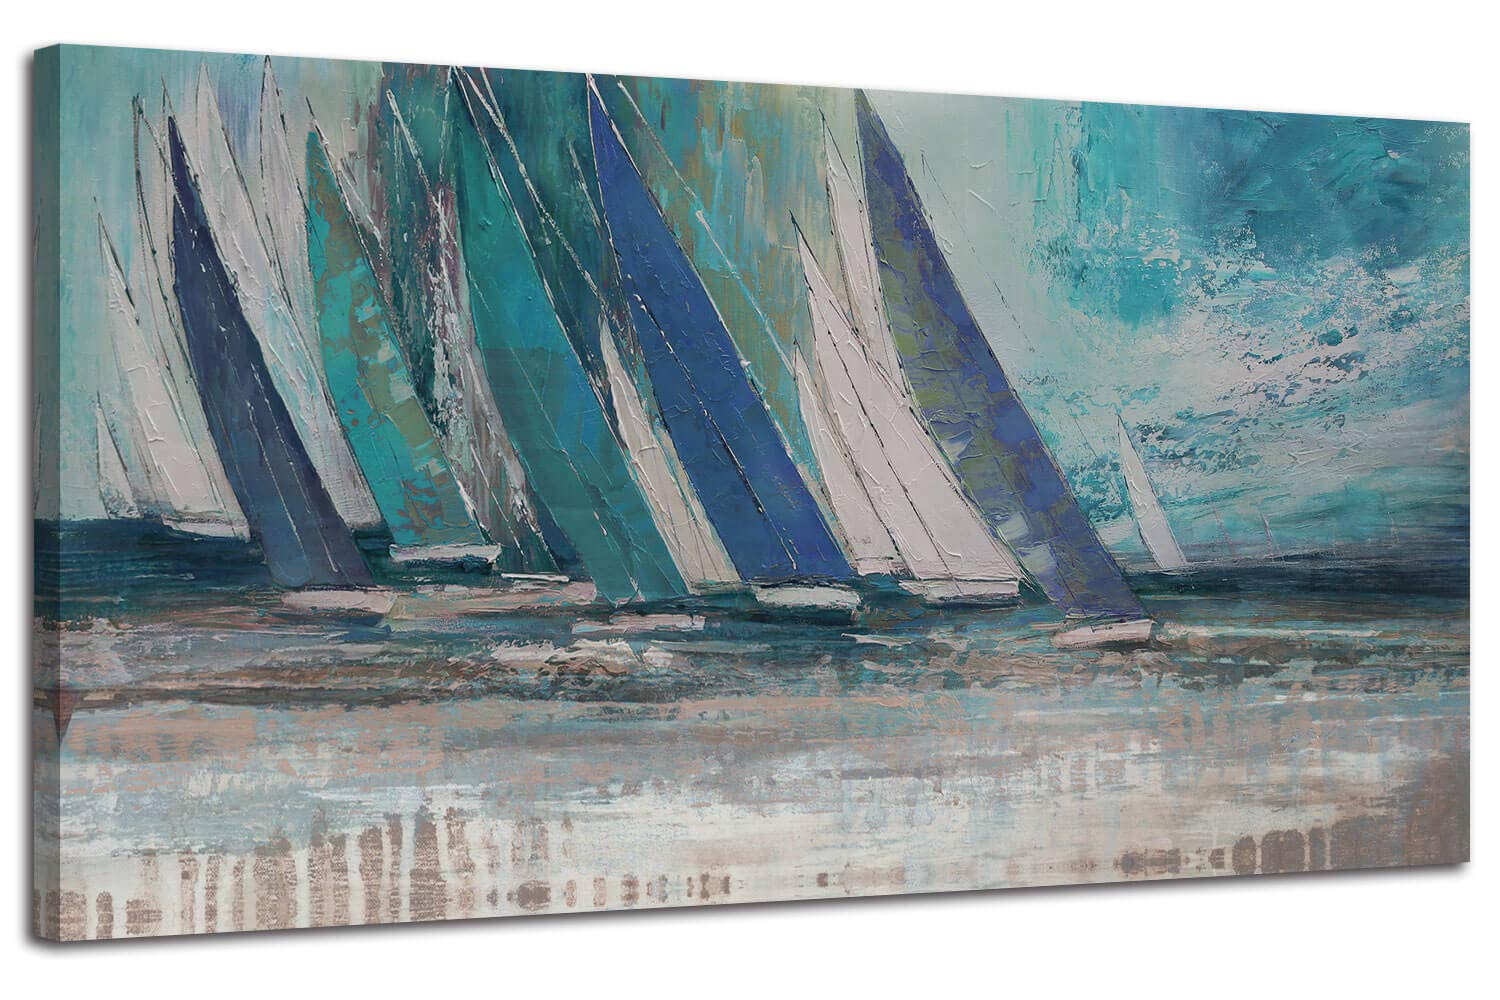 "Arjun Canvas Wall Art Abstract Blue Ocean Sailboat Picture Modern Coastal Painting, Large Prints Framed 40""x20"" One Panel Artwork for Living Room Bedroom Kitchen Dining Room Home Office Decor"